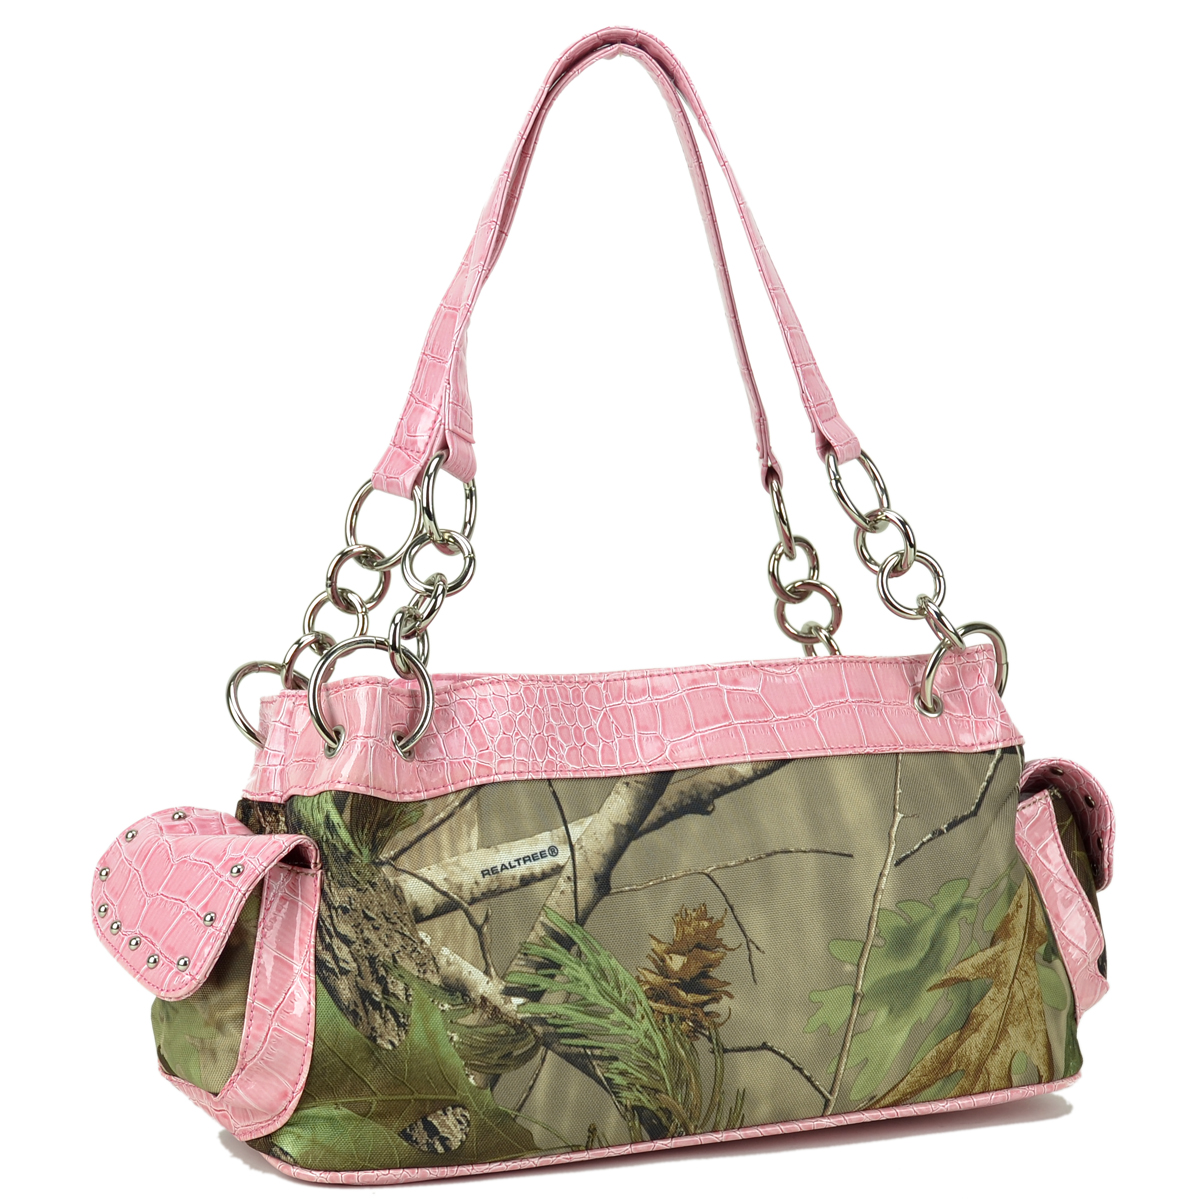 Studded Sholder Bag with Chain/Croc Straps in Real Tree® Camouflage